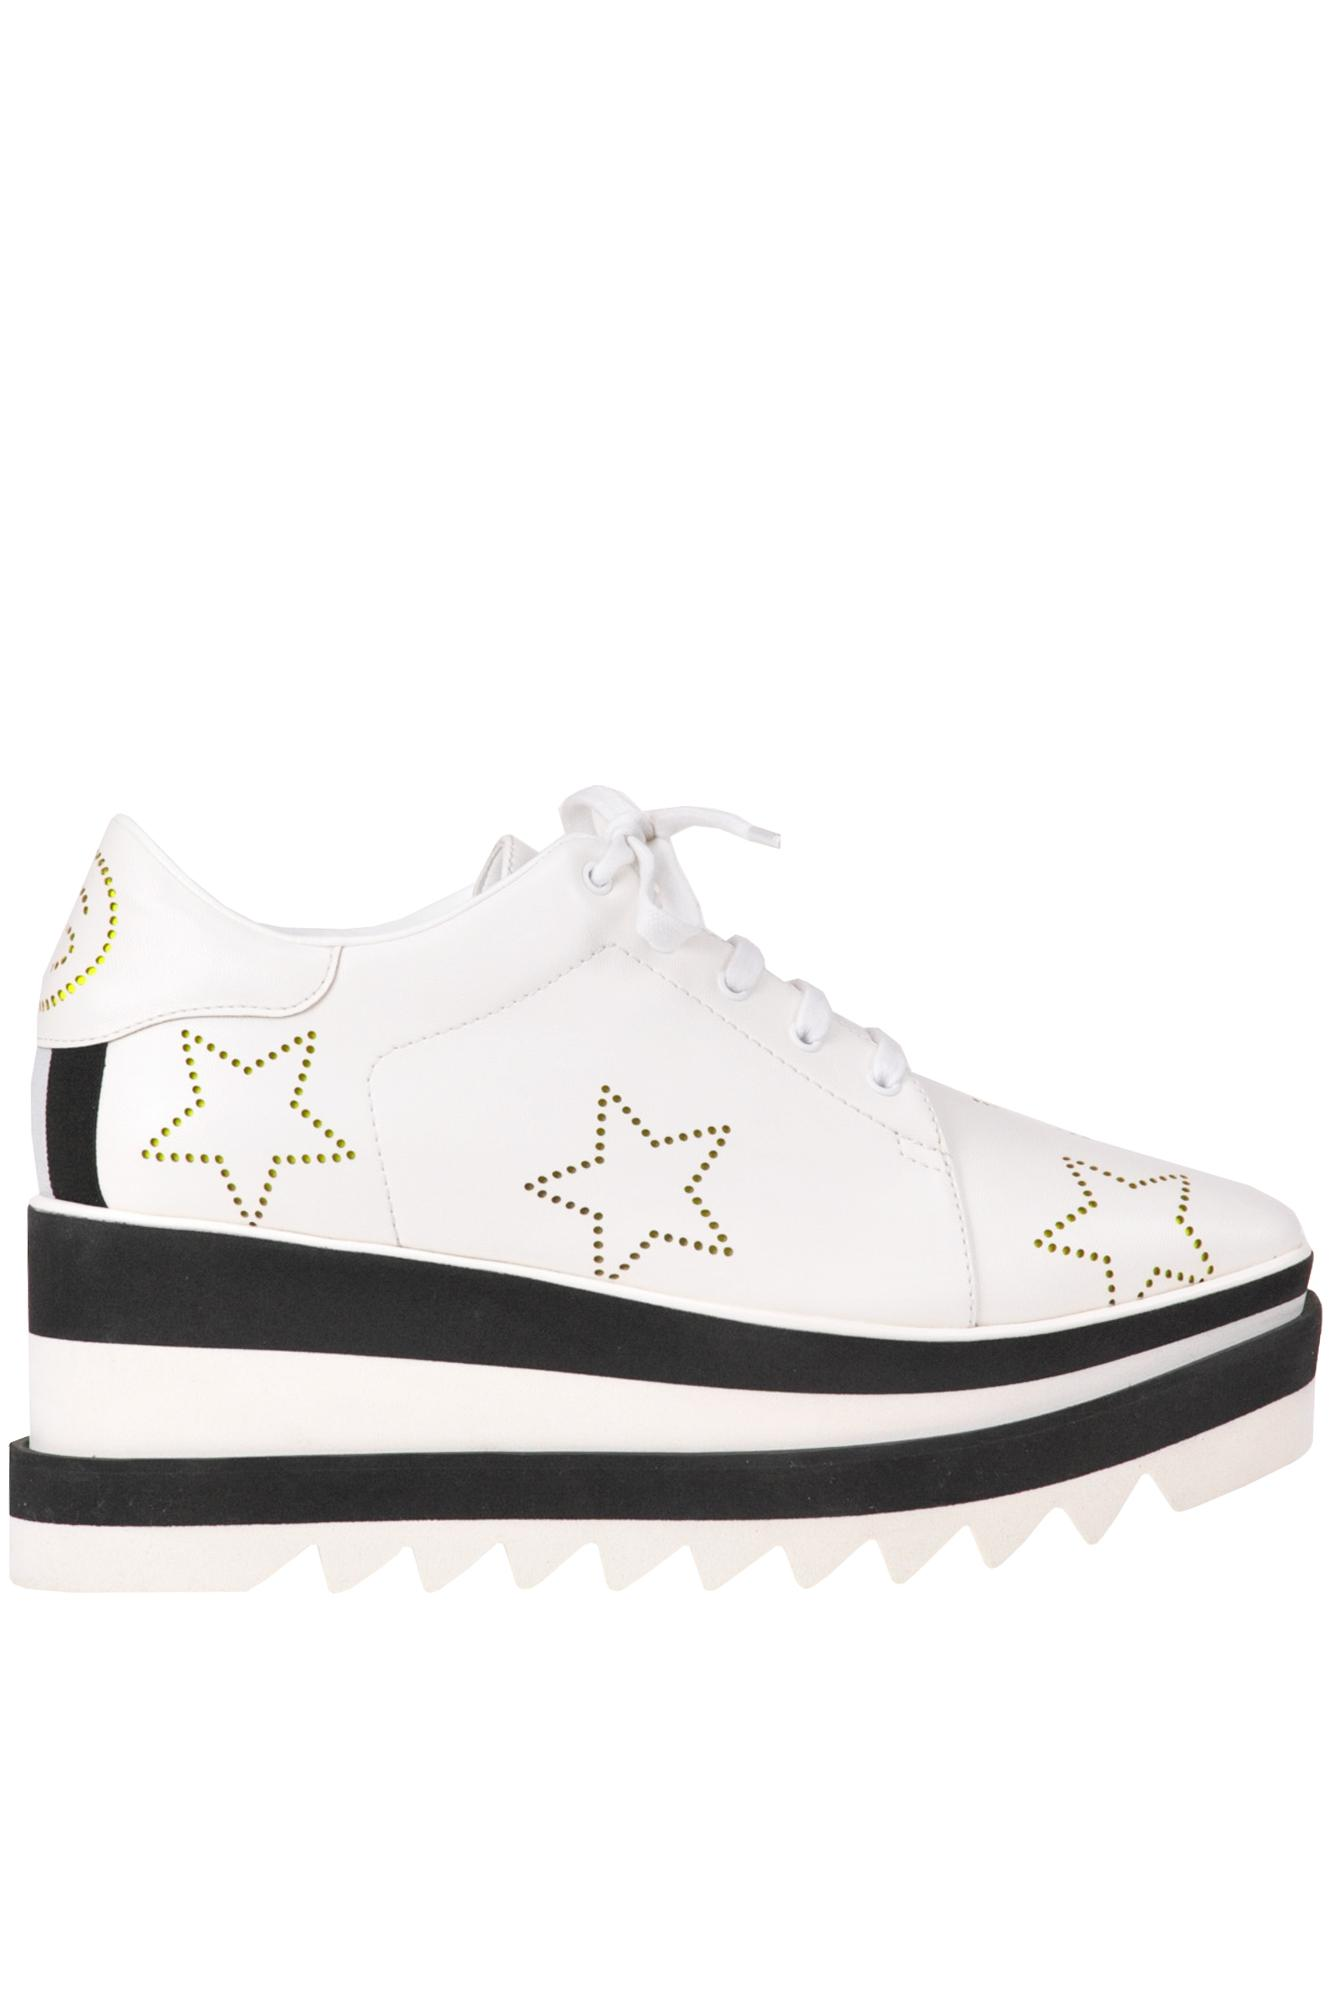 1ef3a9d6b18d Lyst - Stella McCartney Elyse Platform Lace-up Shoes in White